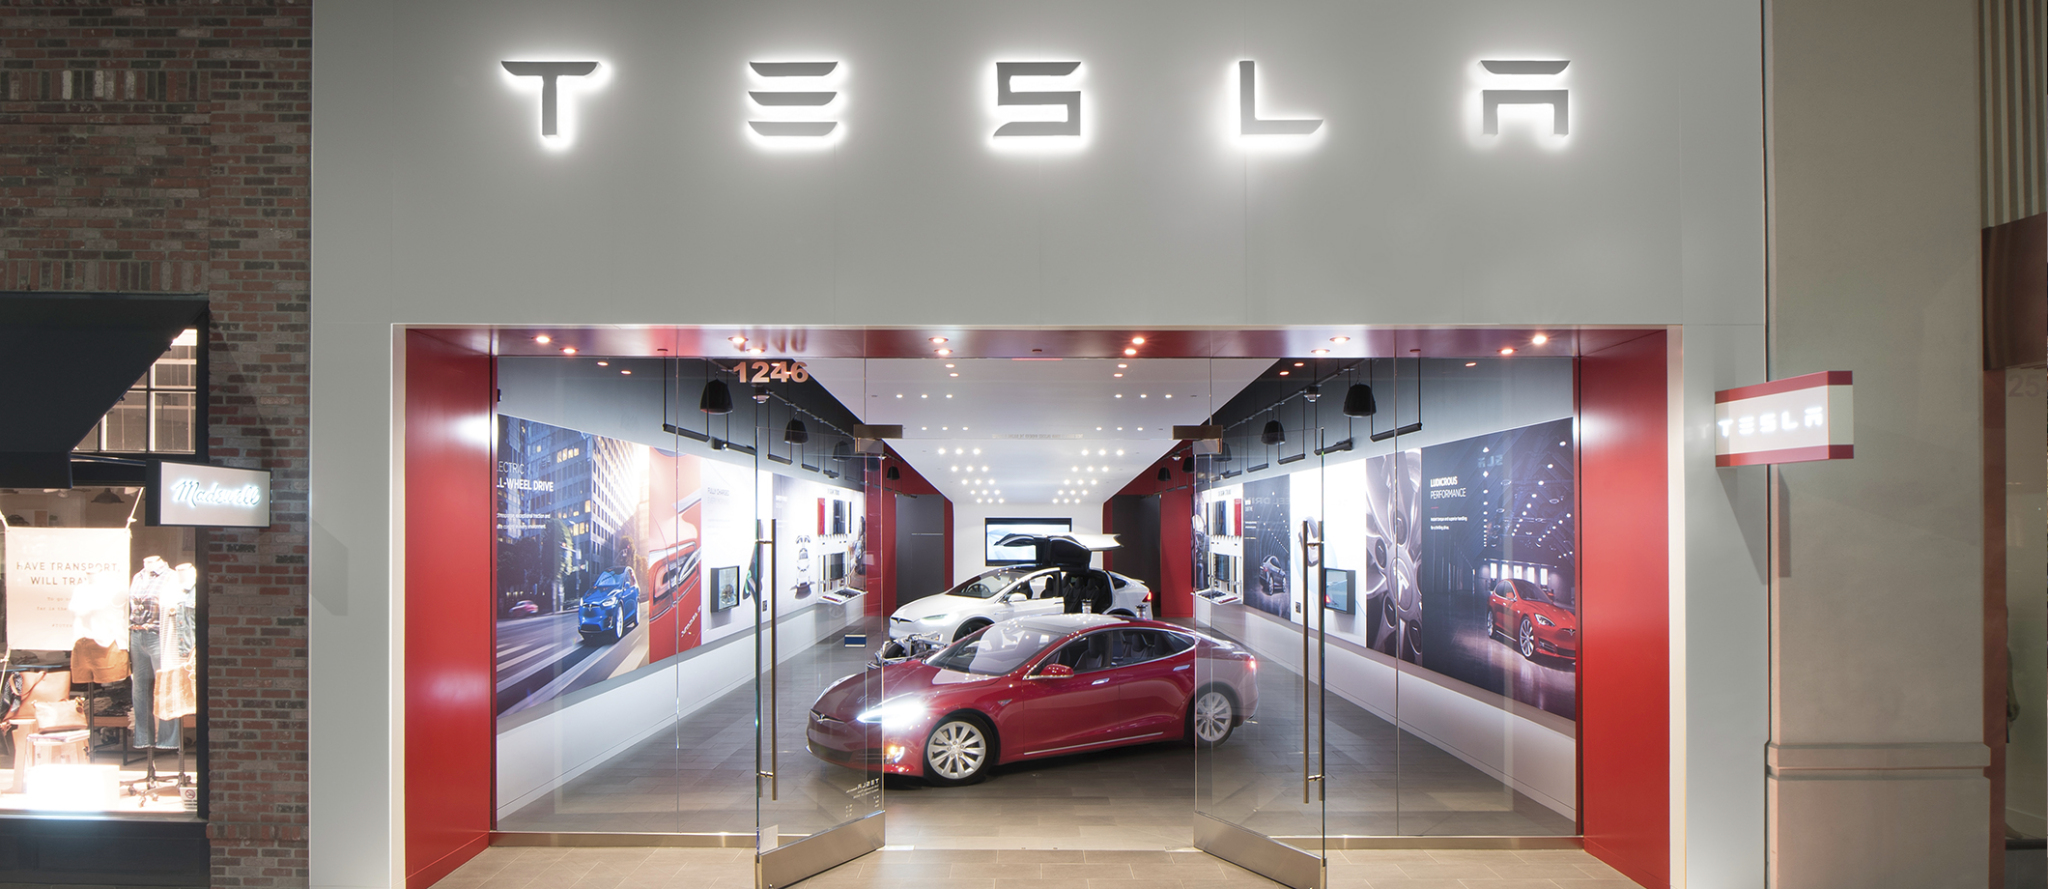 What's going on with Tesla stock - are we coming up on a